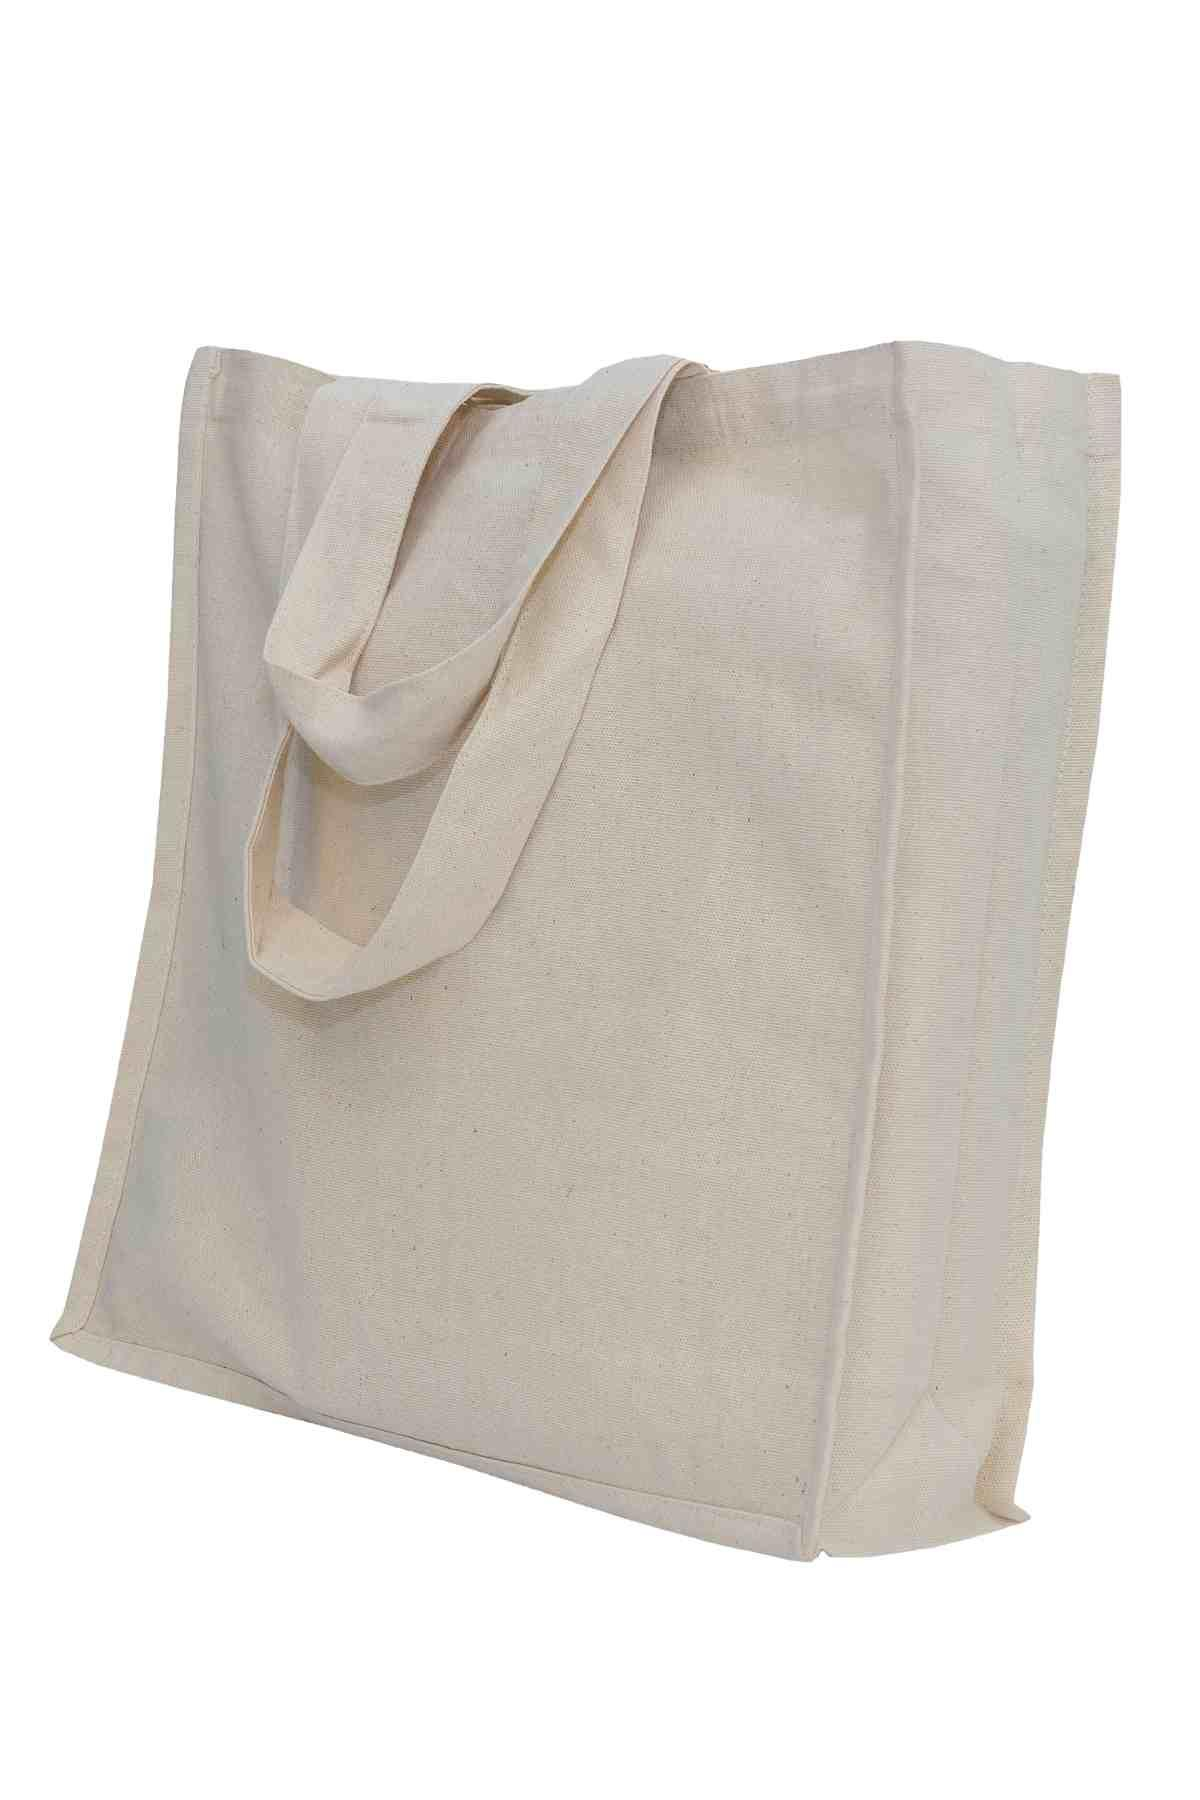 Canvas Tote Bag Square